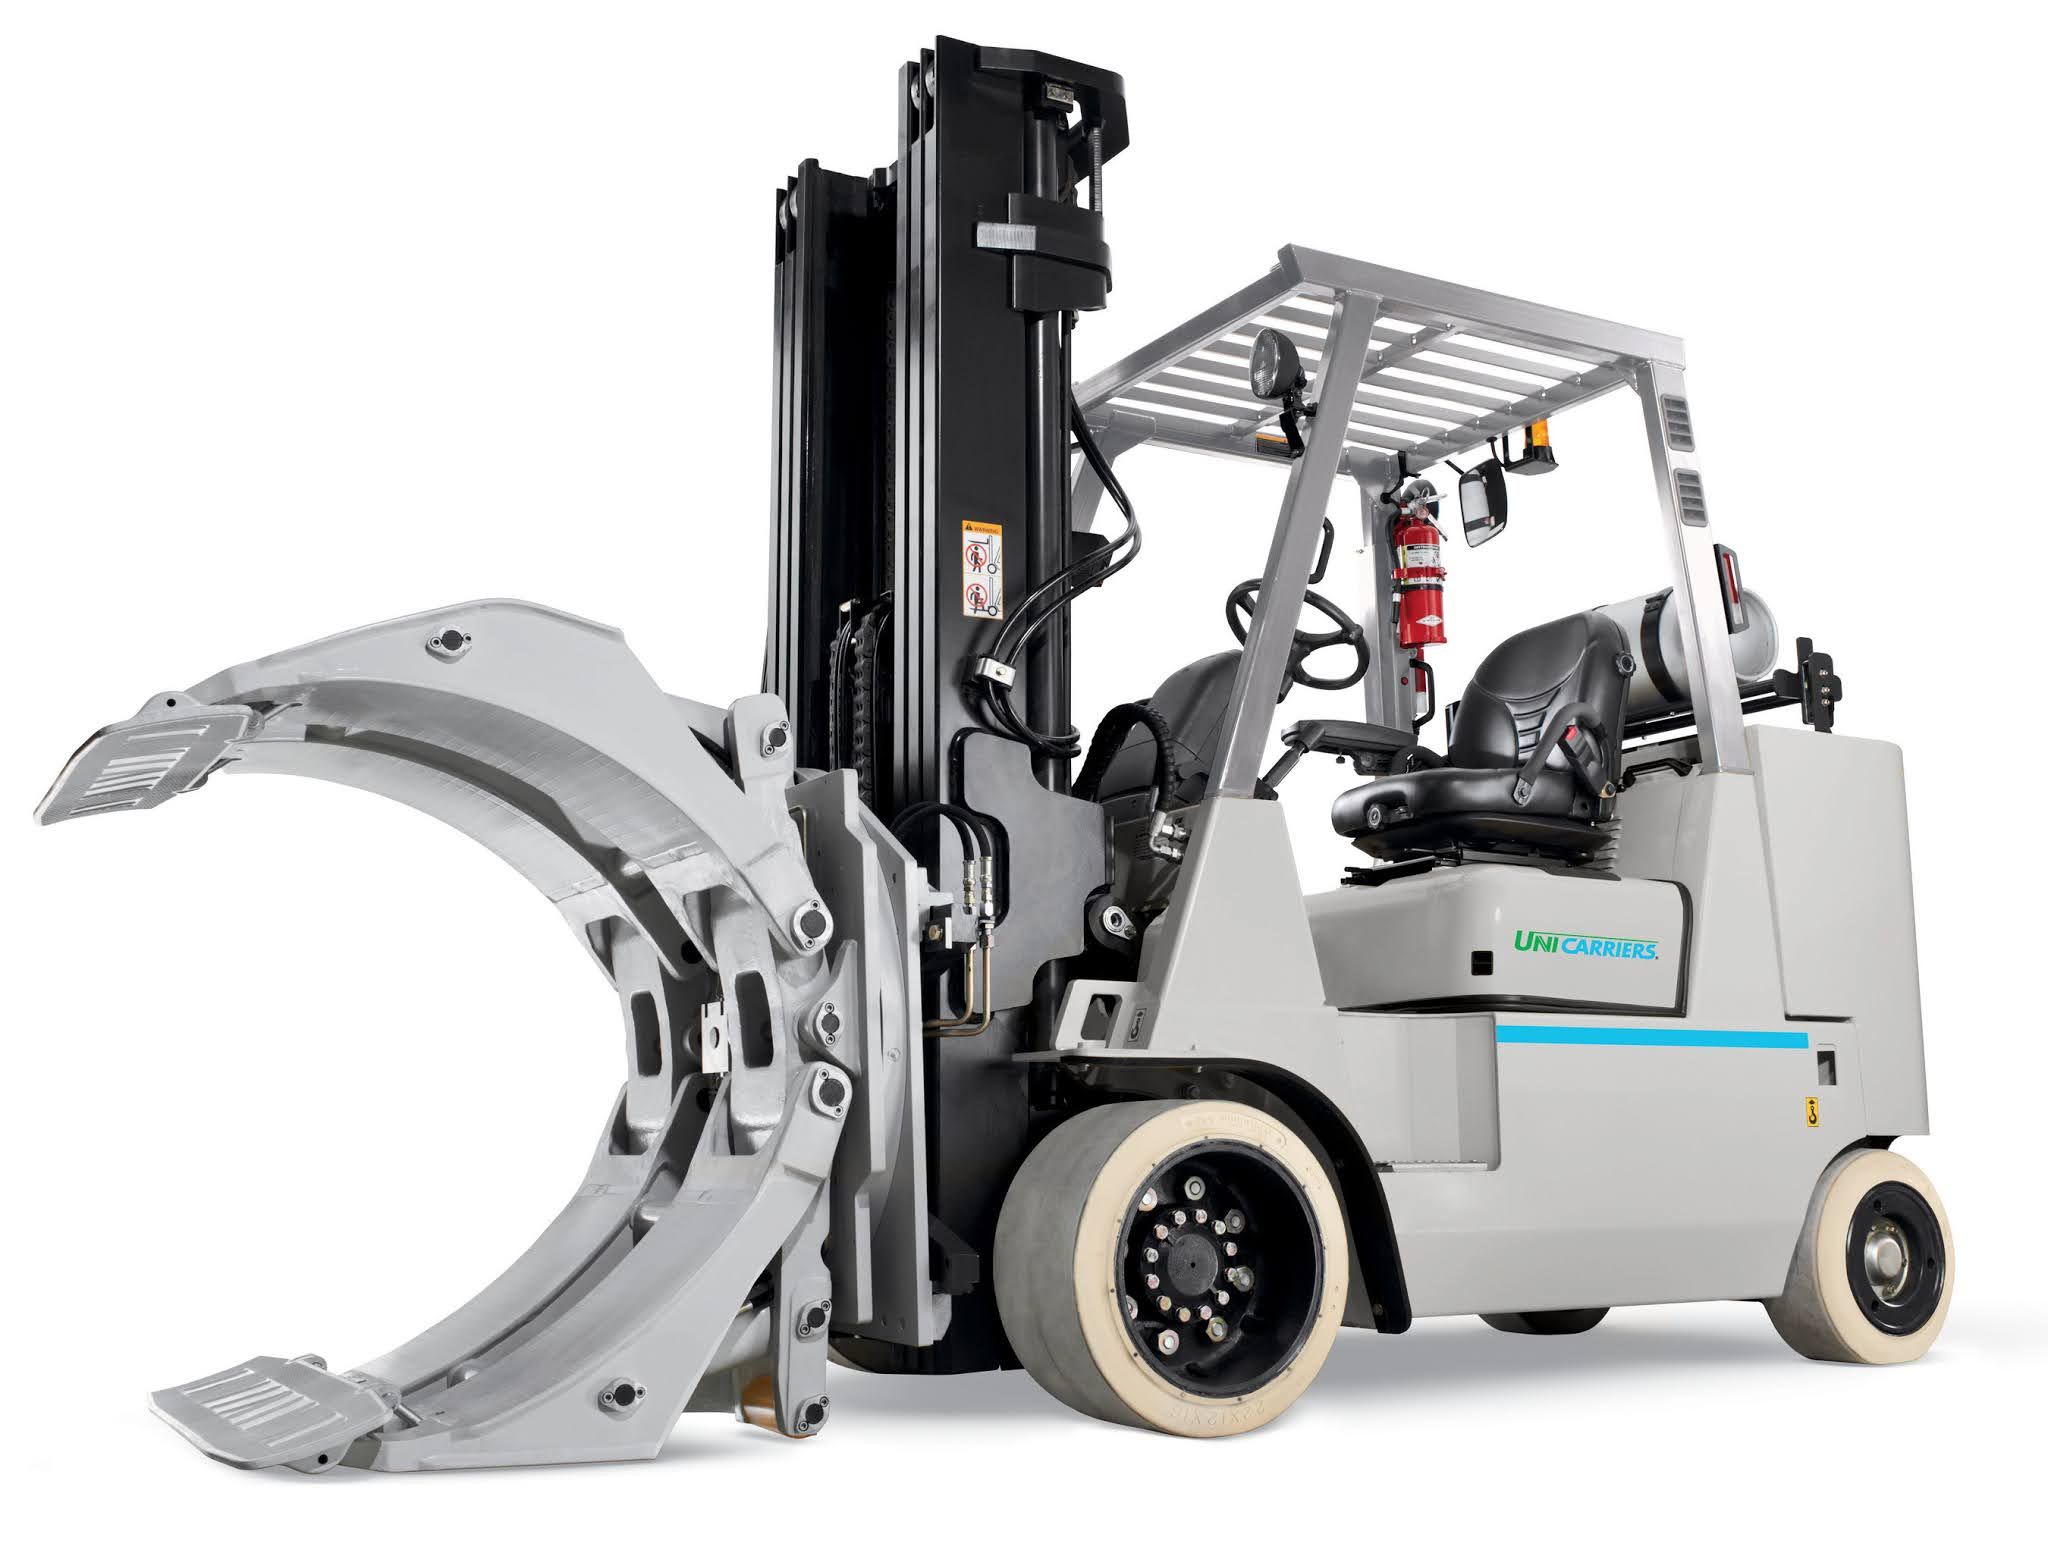 Mitsubishi Logisnext Americas Group Launches New UniCarriers Forklift Heavy-Duty Cushion Truck